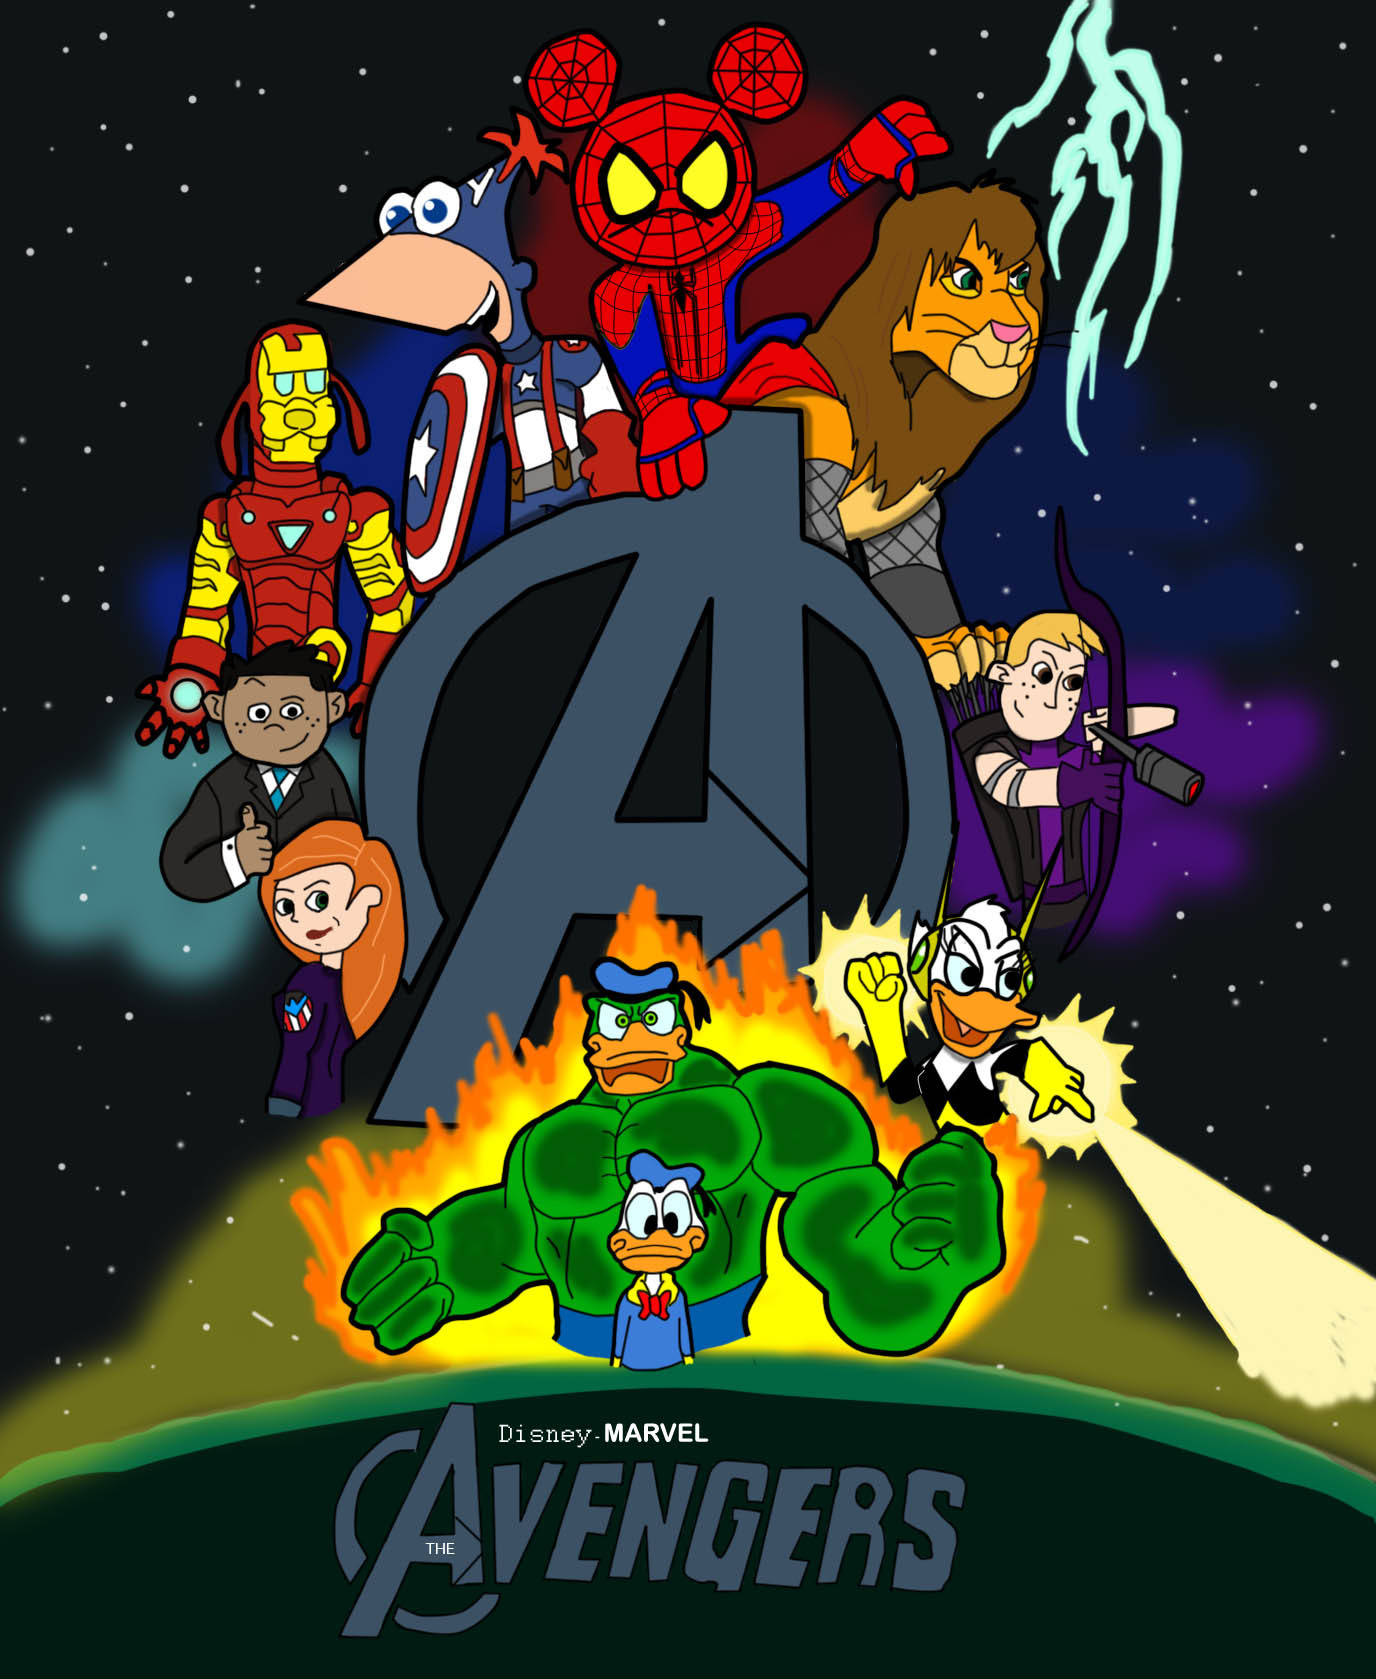 Disney-Marvel Avengers Poster by CK-was-HERE